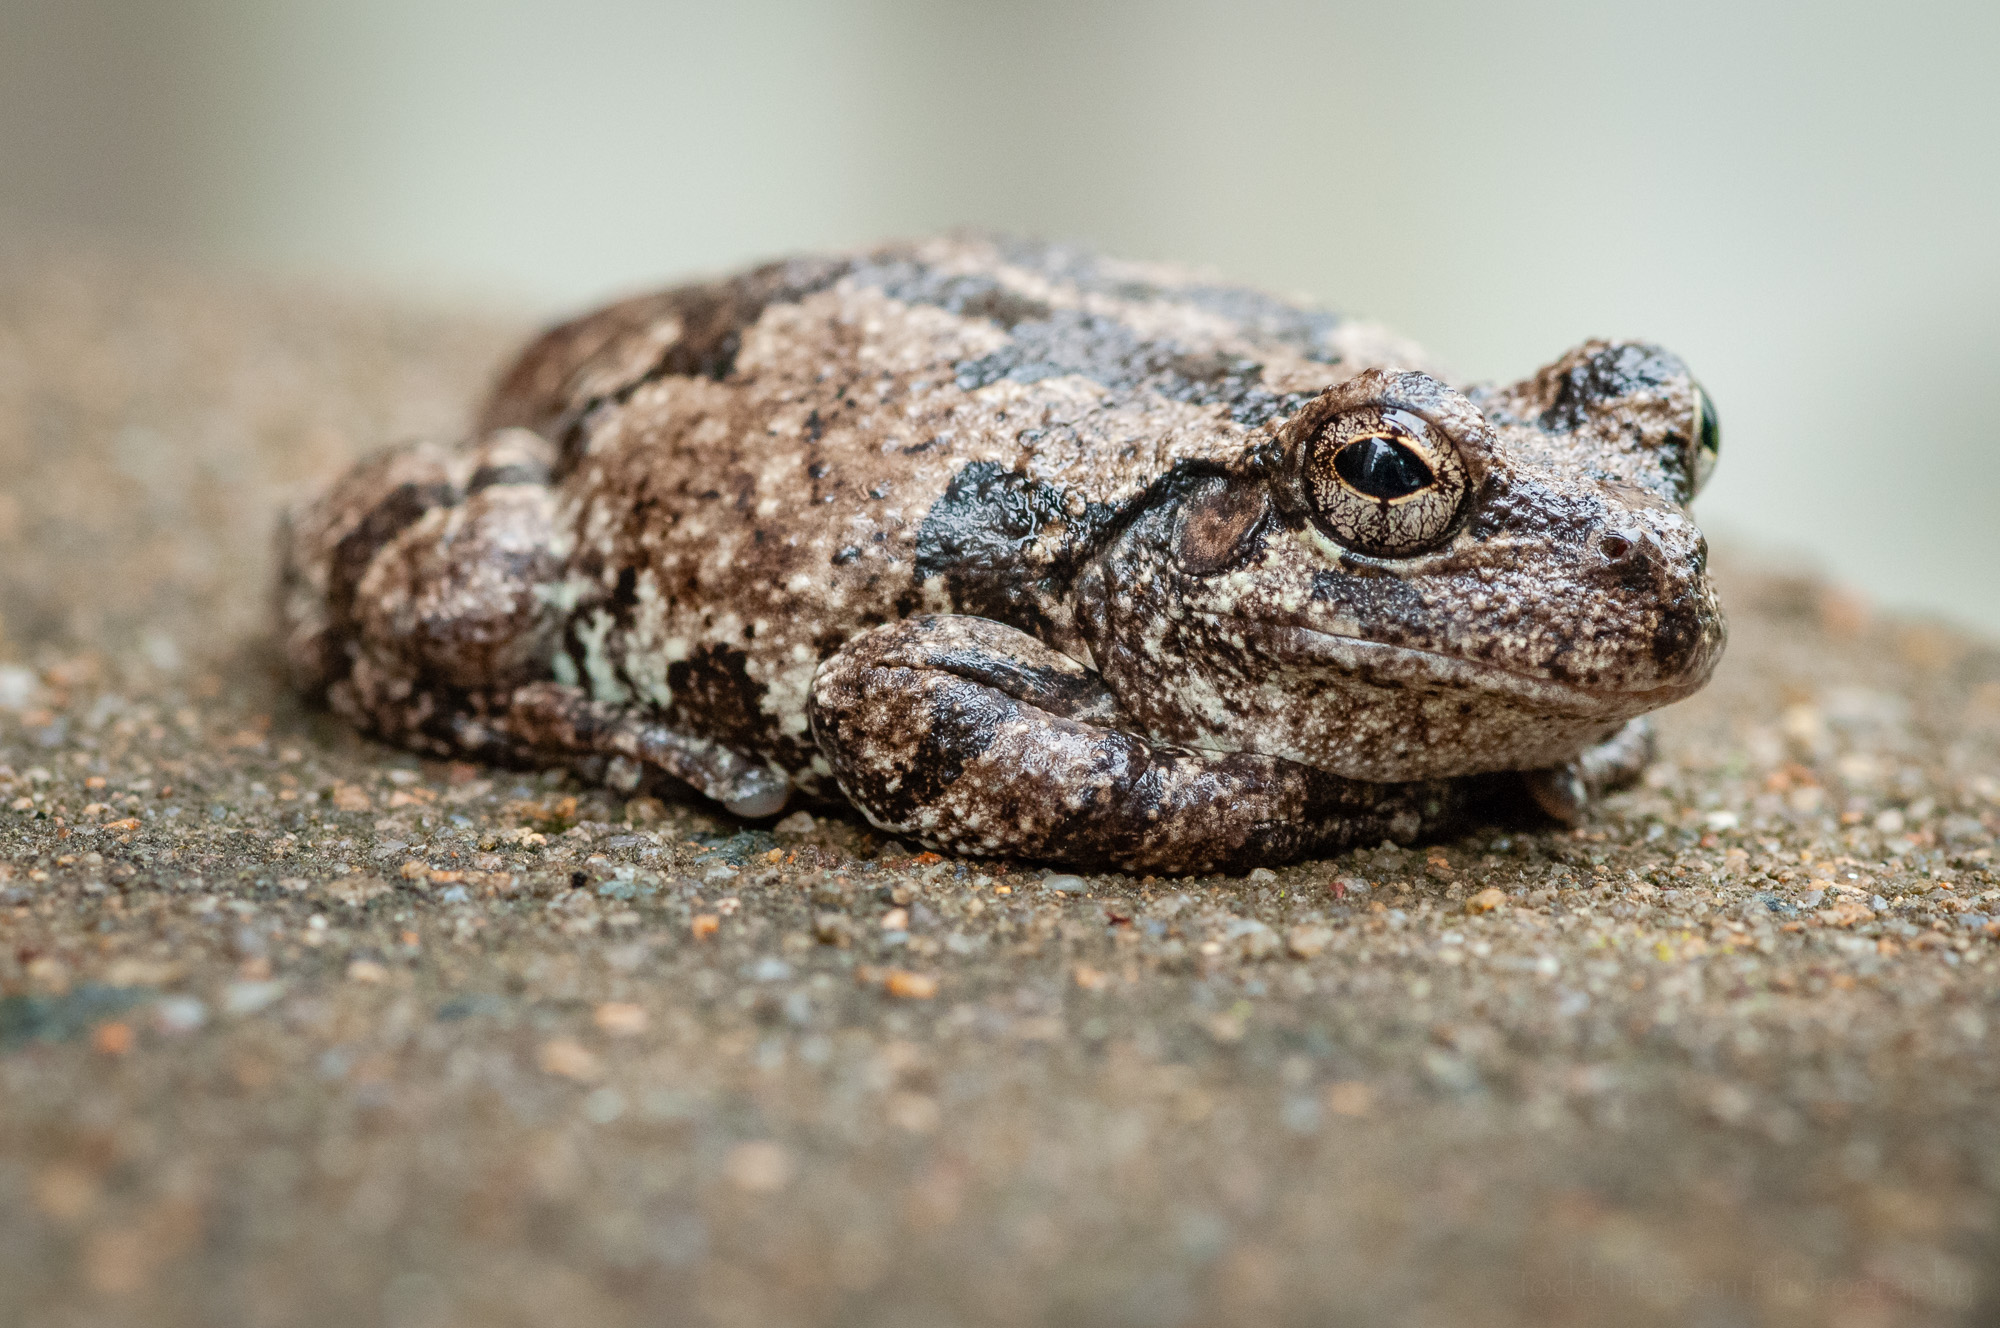 The gray treefrog has turned its eye to the camera.